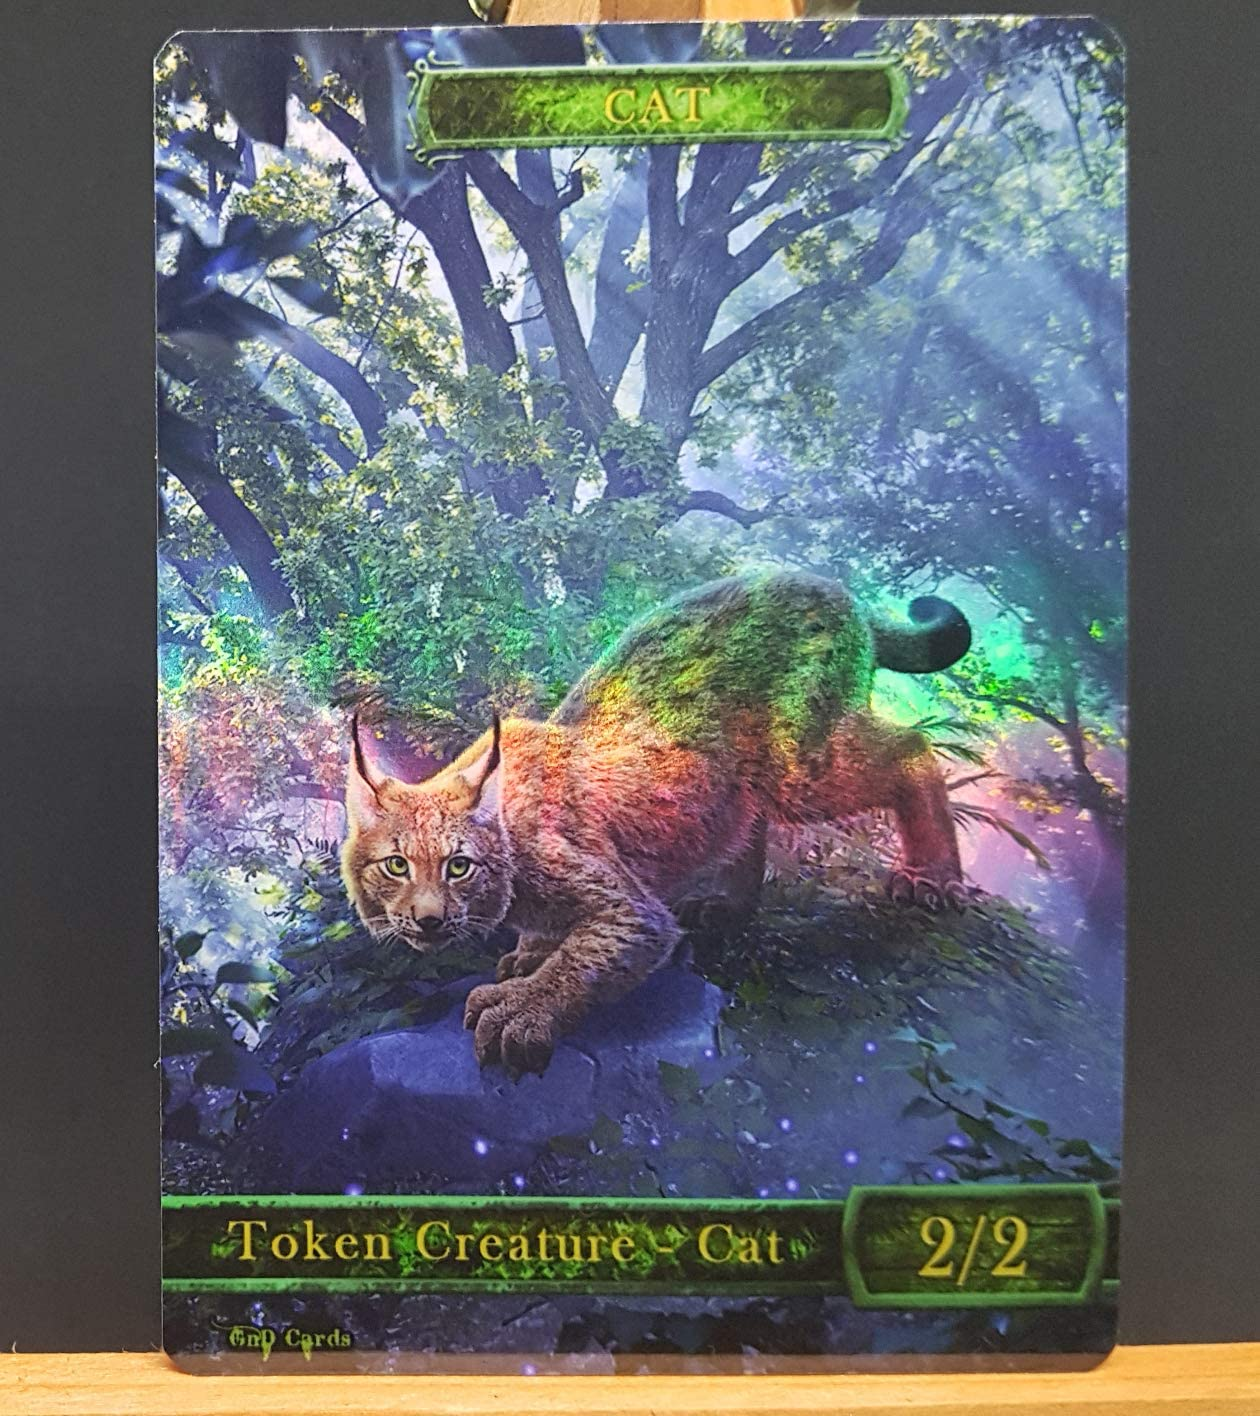 GnD Cards 1x Green Cat #8 FOIL Laminated Custom Altered Token